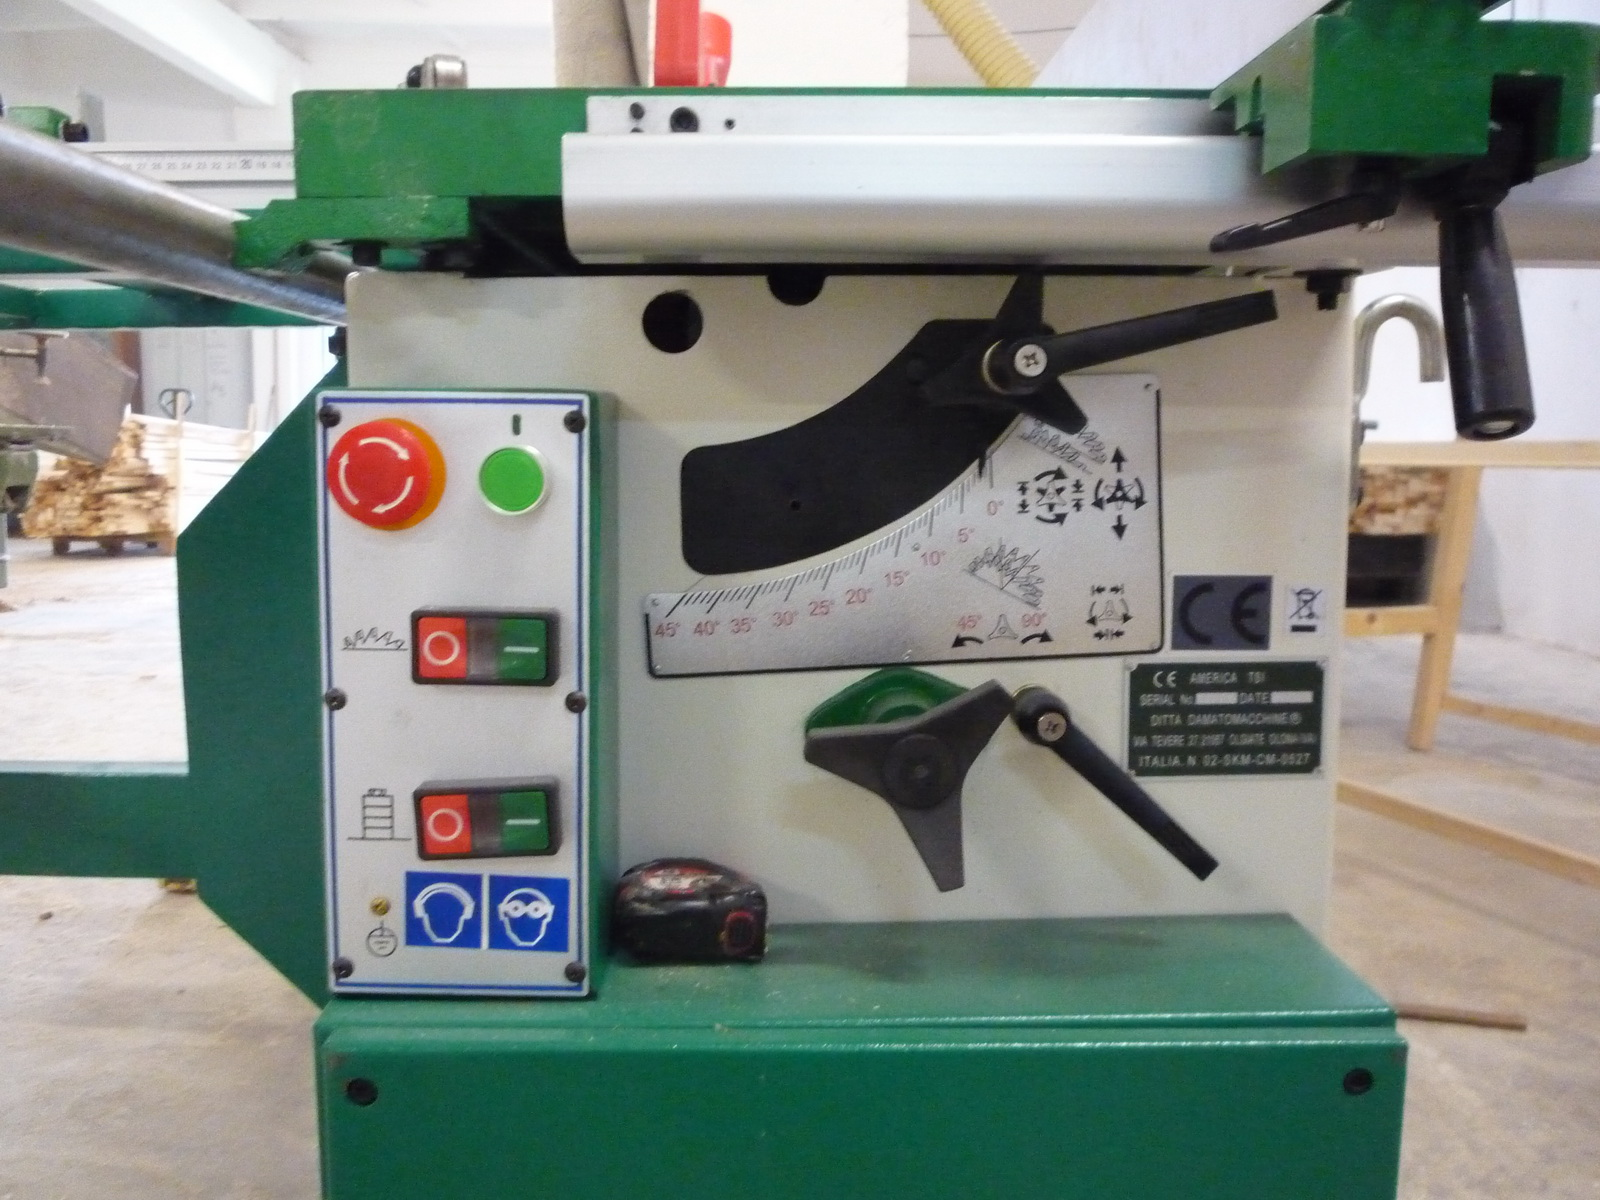 Masina Combinata lemn circular cu Freza damato machine  TSI super 2600 2